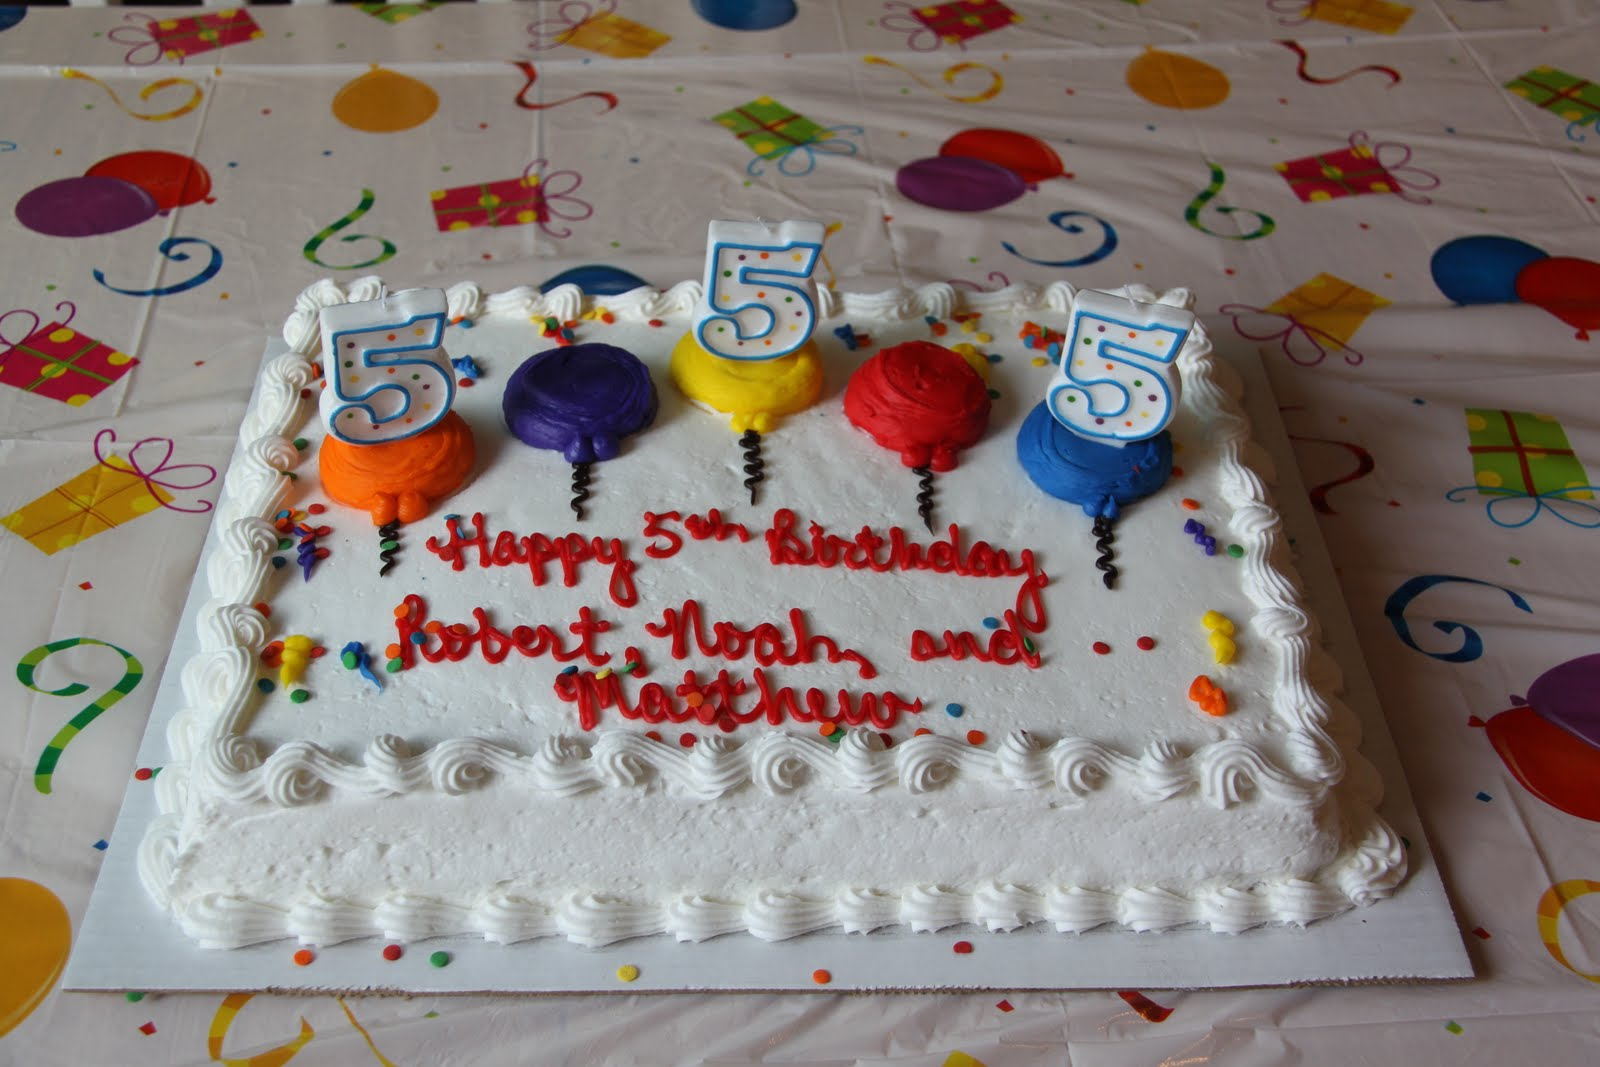 Pleasing Costco Cakes To Order Top Birthday Cake Pictures Photos Images Personalised Birthday Cards Epsylily Jamesorg